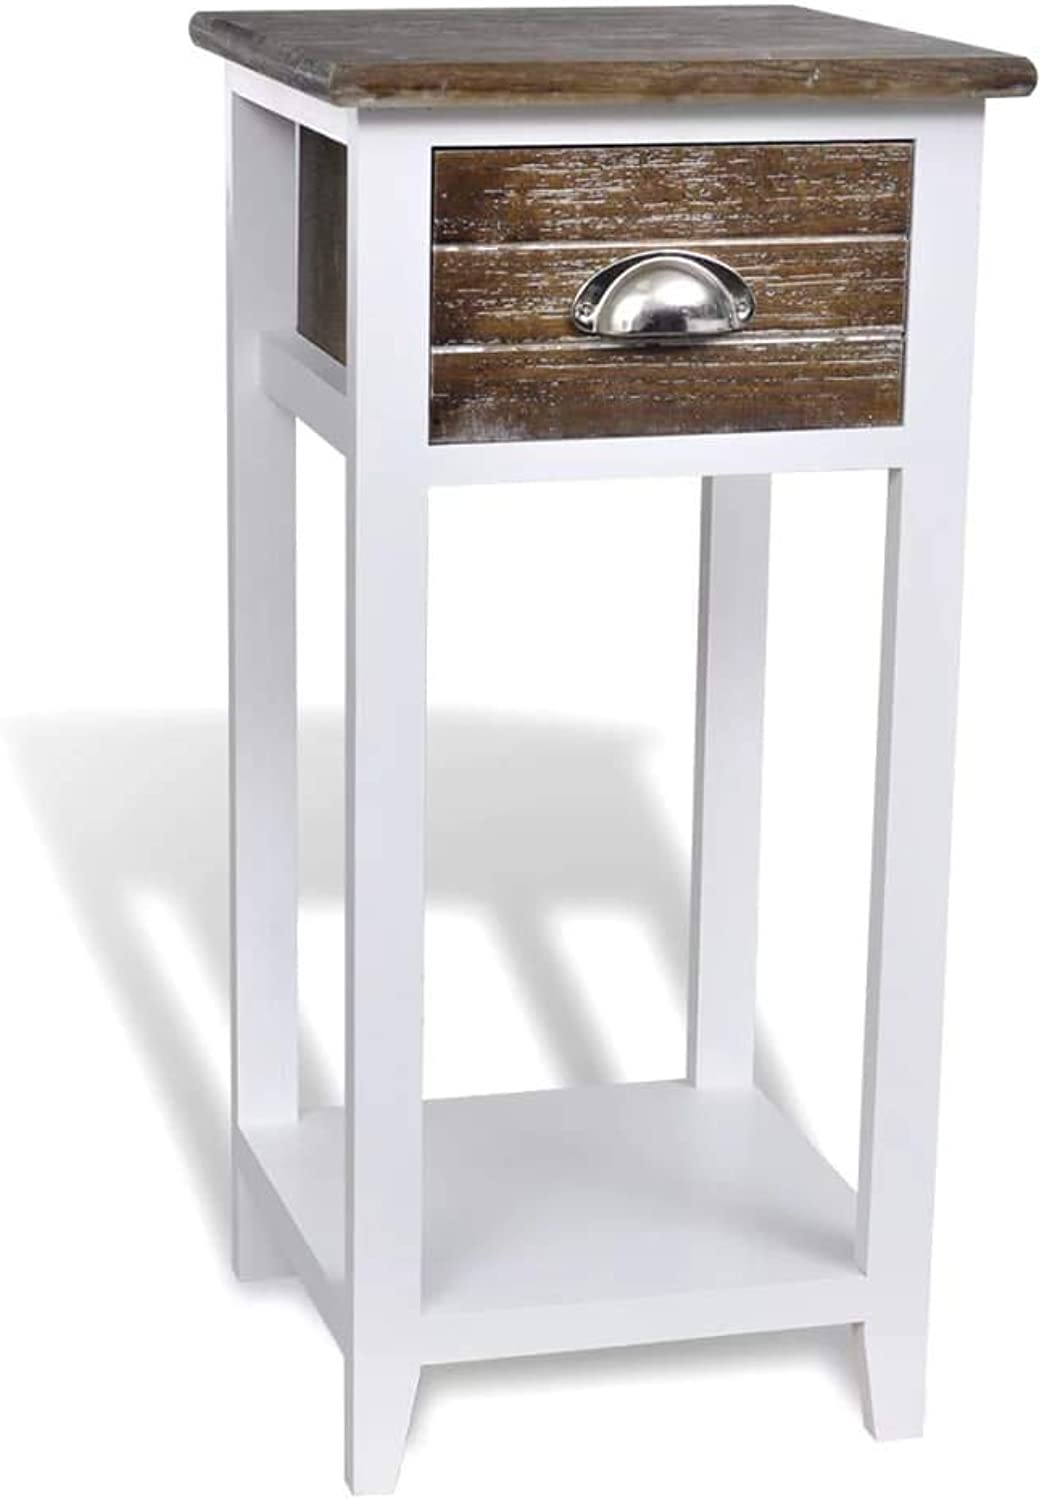 VidaXL Nightstand with 1 Drawer Brown and White Storage Bedside Table Cabinet